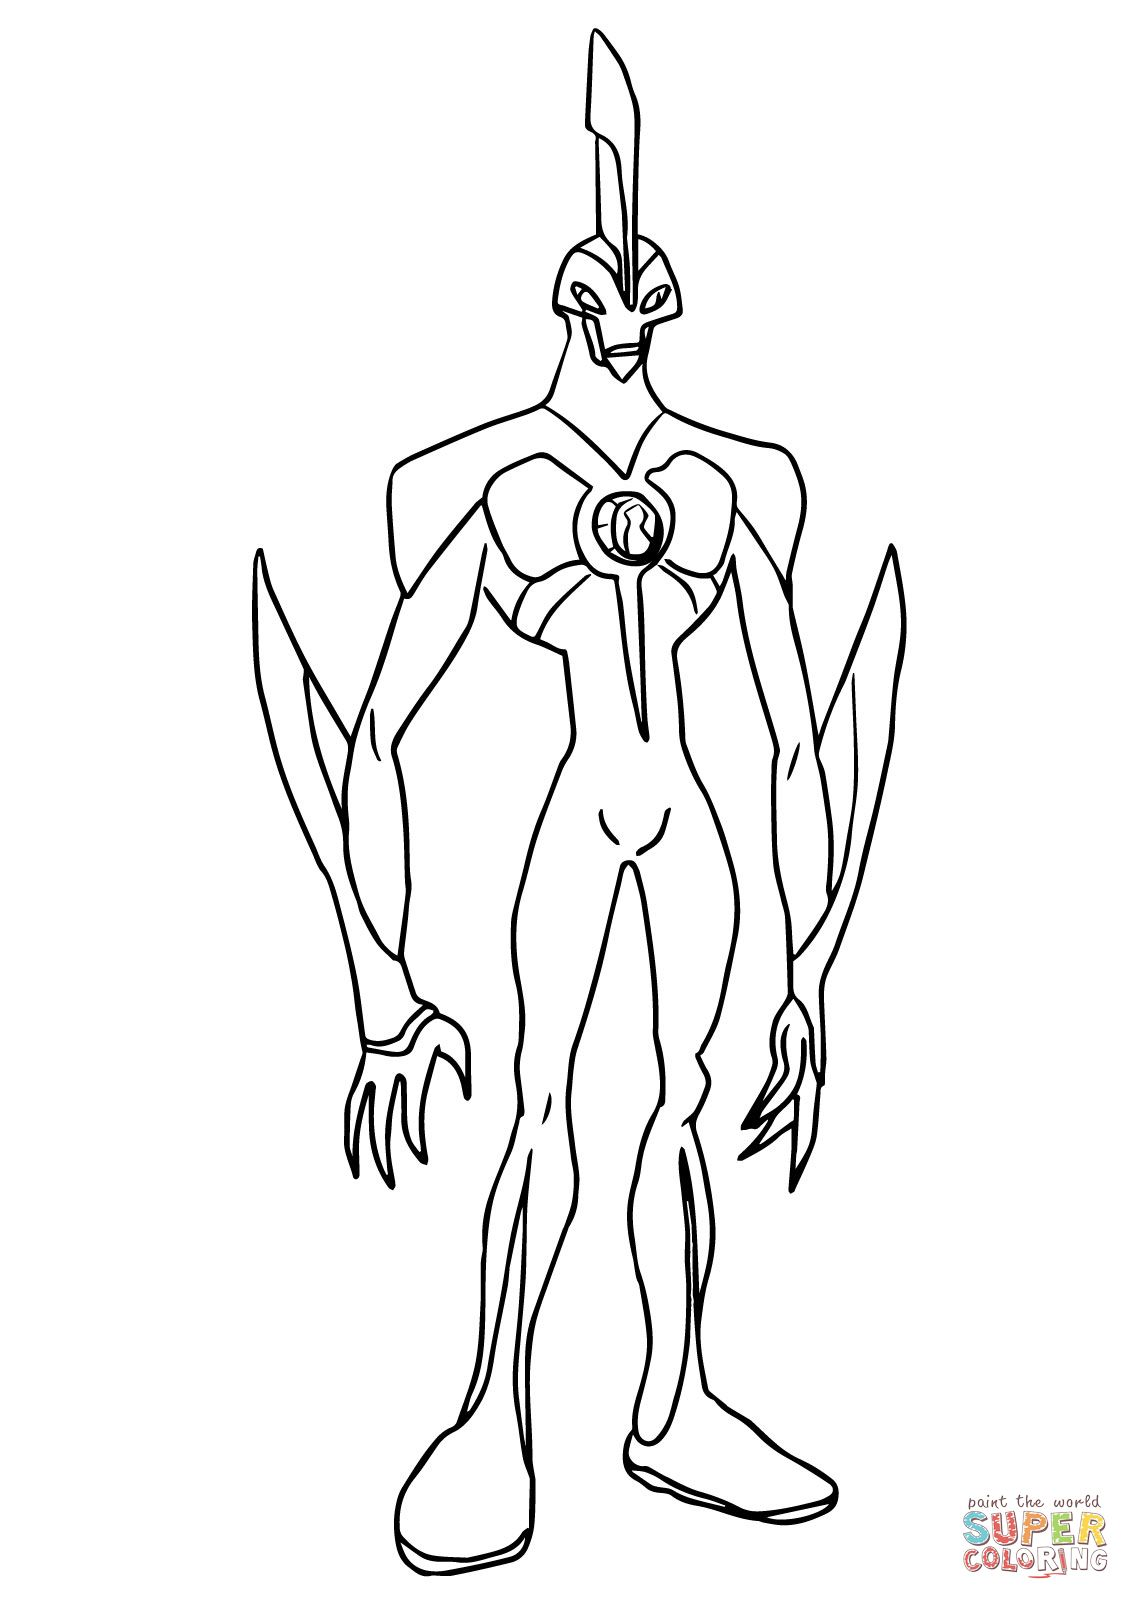 free coloring pages download ben 10 way big coloring page coping skills pinterest ben 10